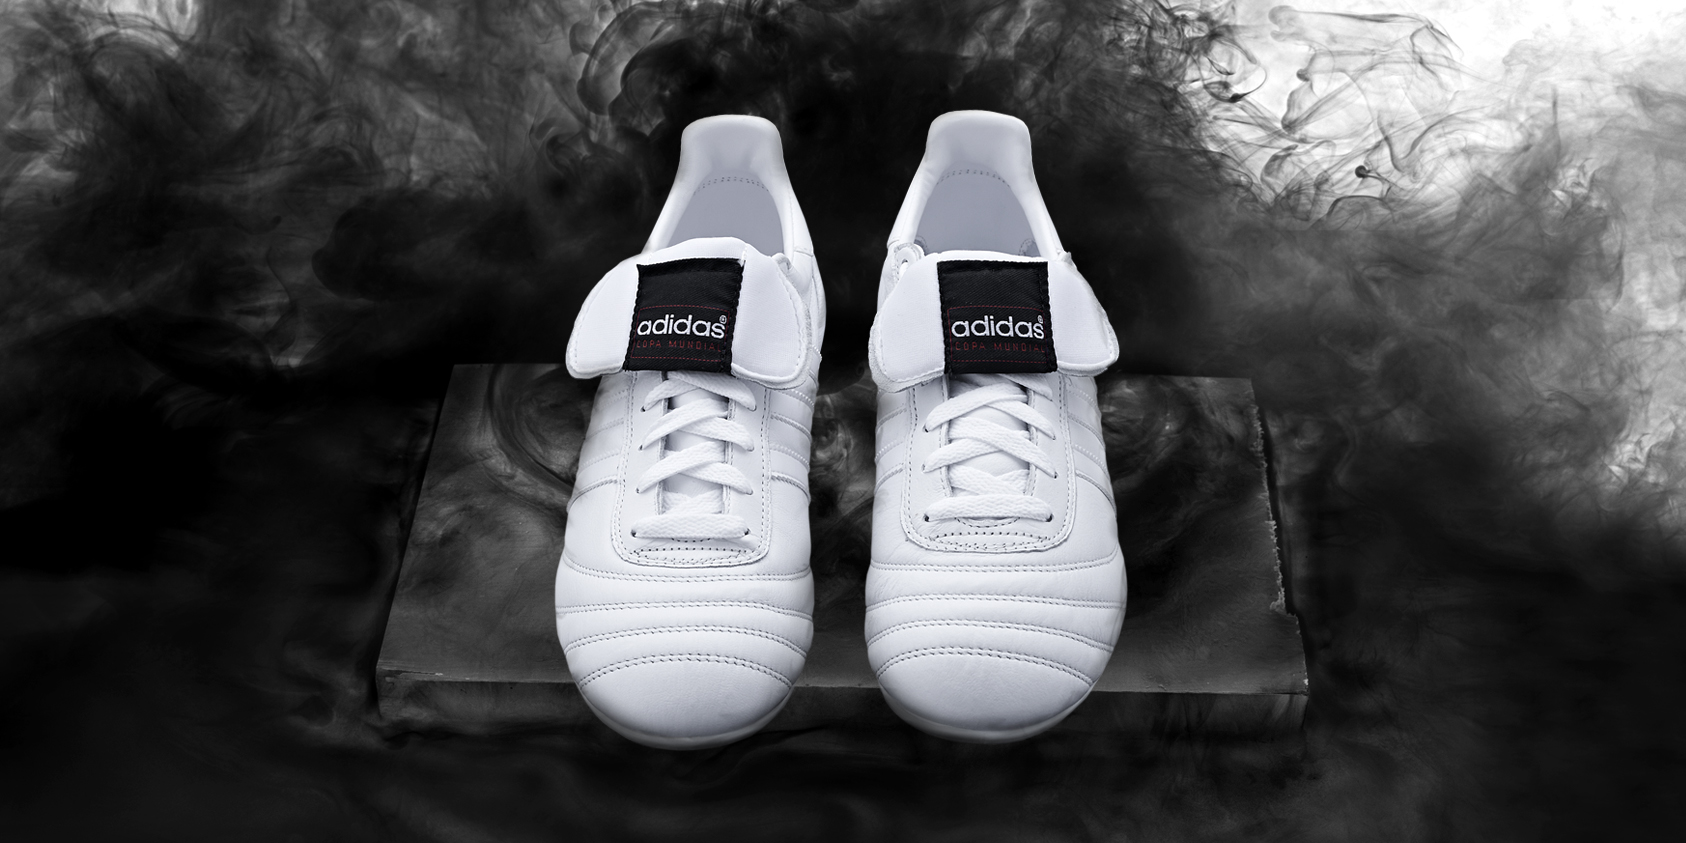 b9fa90b1782 ... adidas have reissued the iconic Copa Mundials in a ridiculously good  looking all black and all white. Adidas Football B W Copa White Hero 01